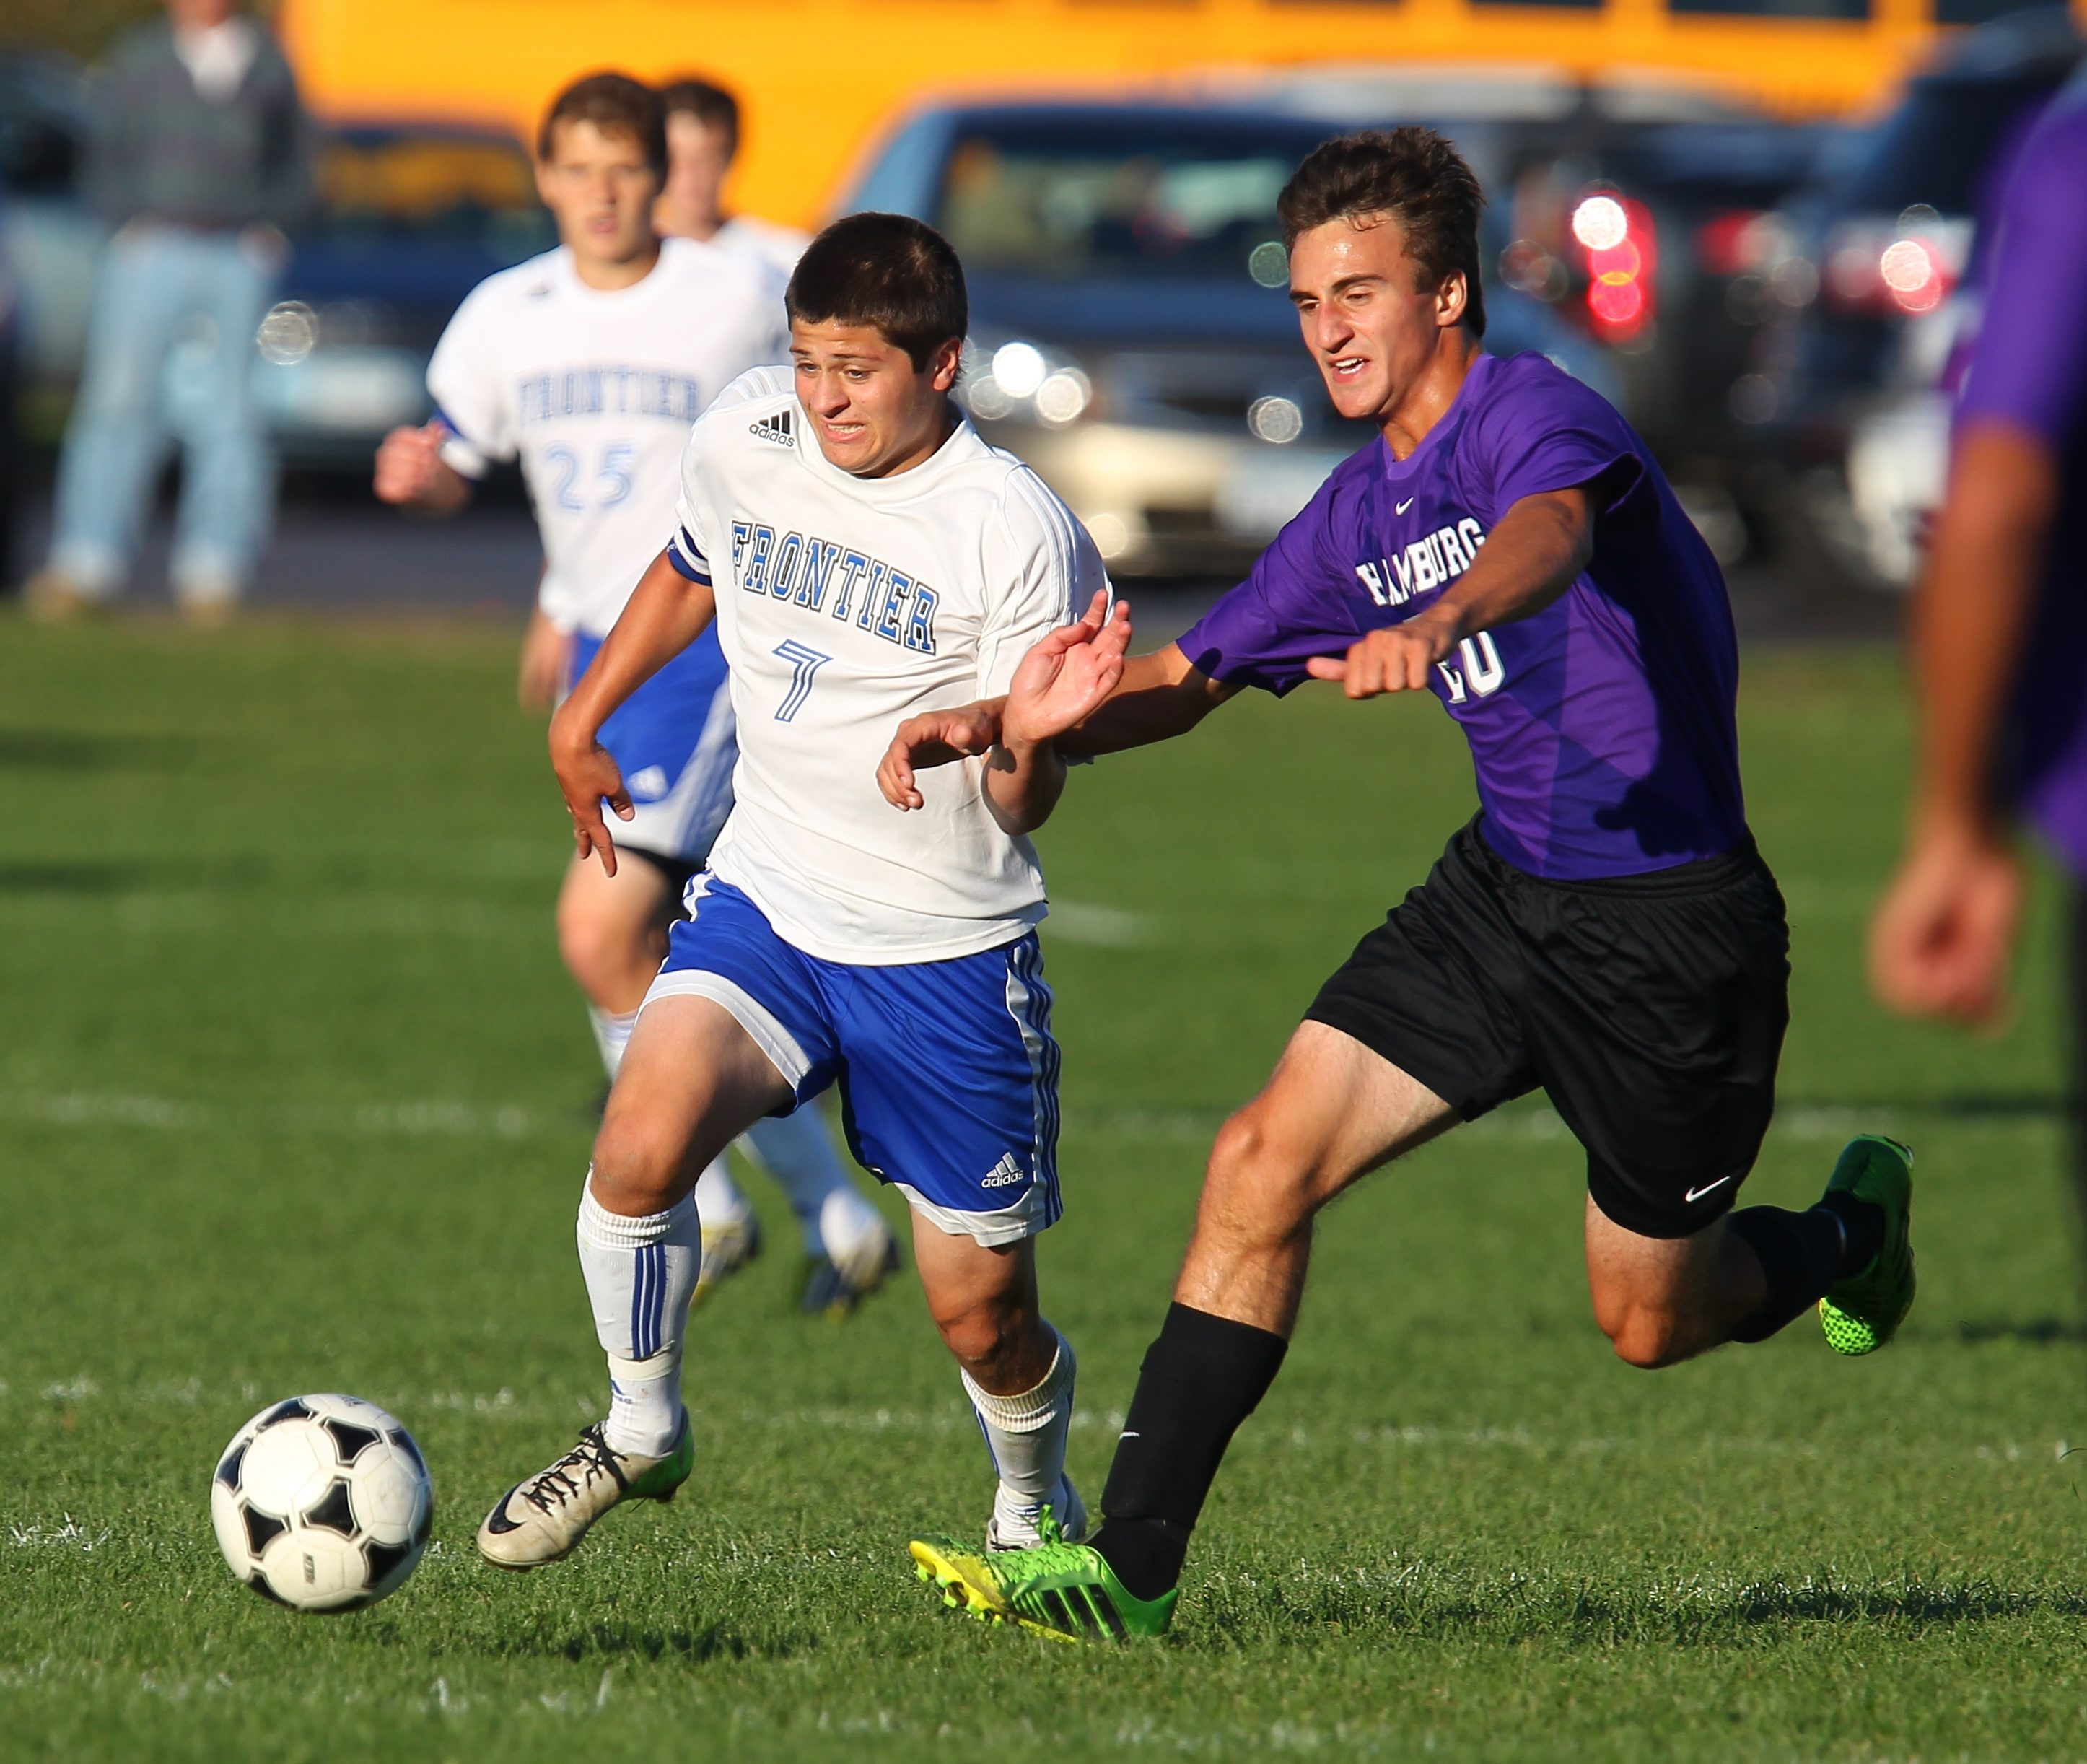 Brandon Galanti scored both goals, giving him 12 this season, in Frontier's 2-1 win over Hamburg.